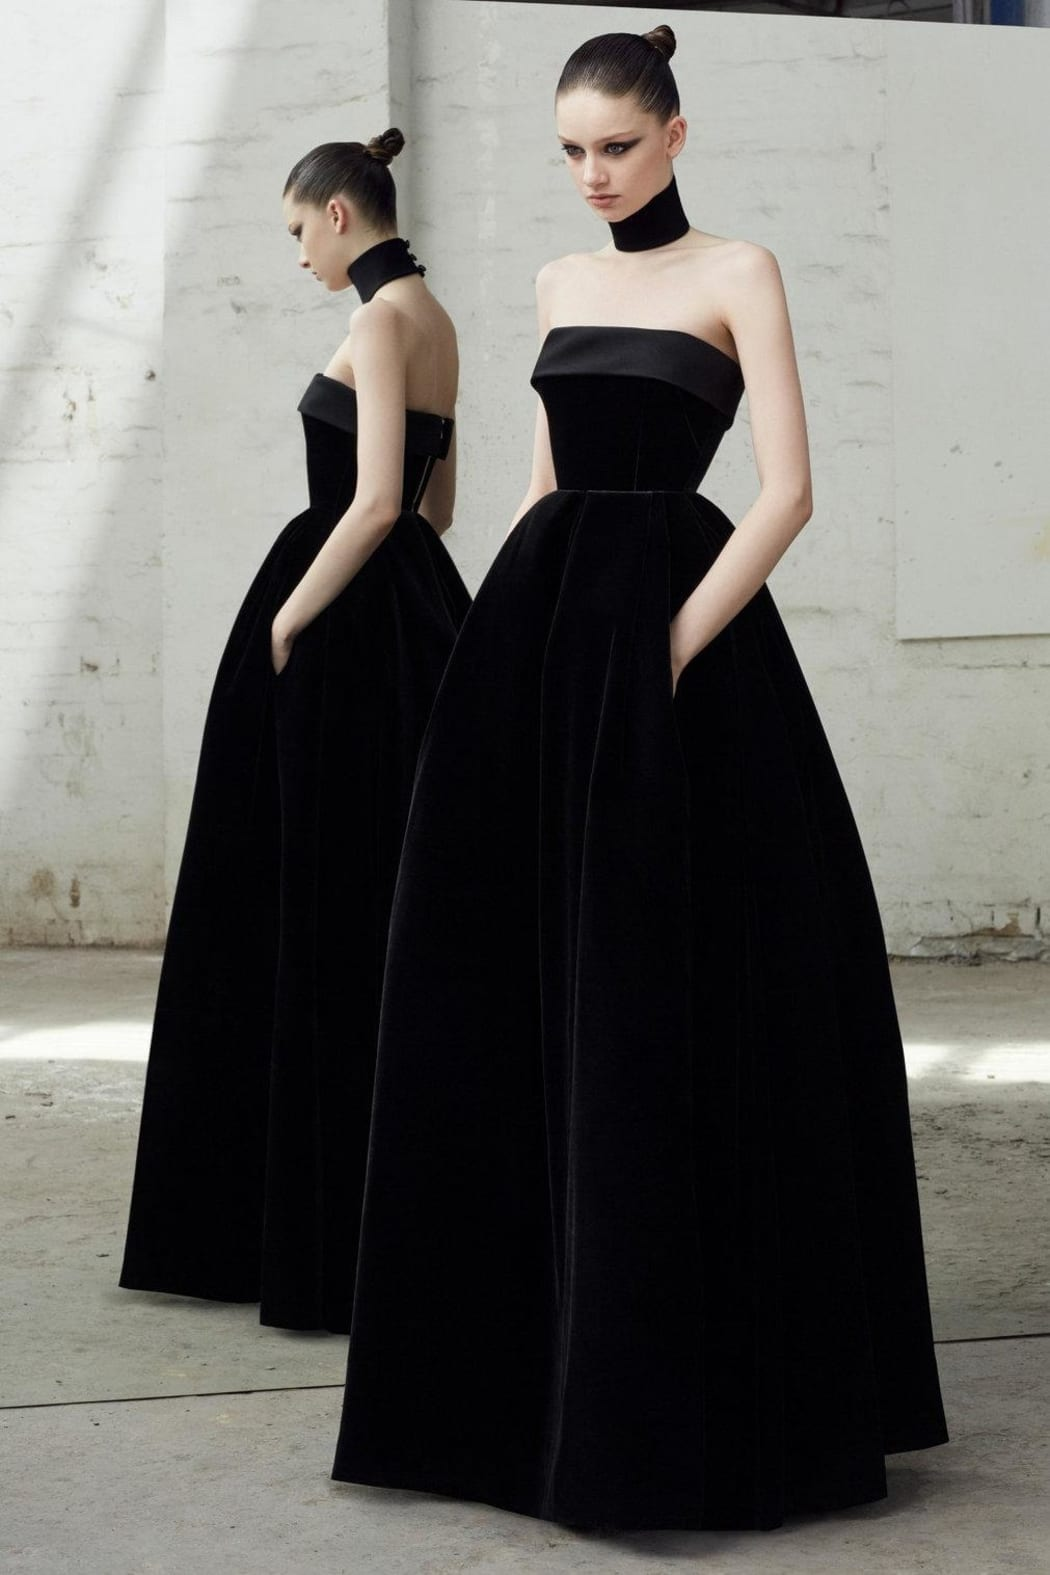 DISTRICT 5 BOUTIQUE Strapless Velvet Black Gown - We Select Dresses